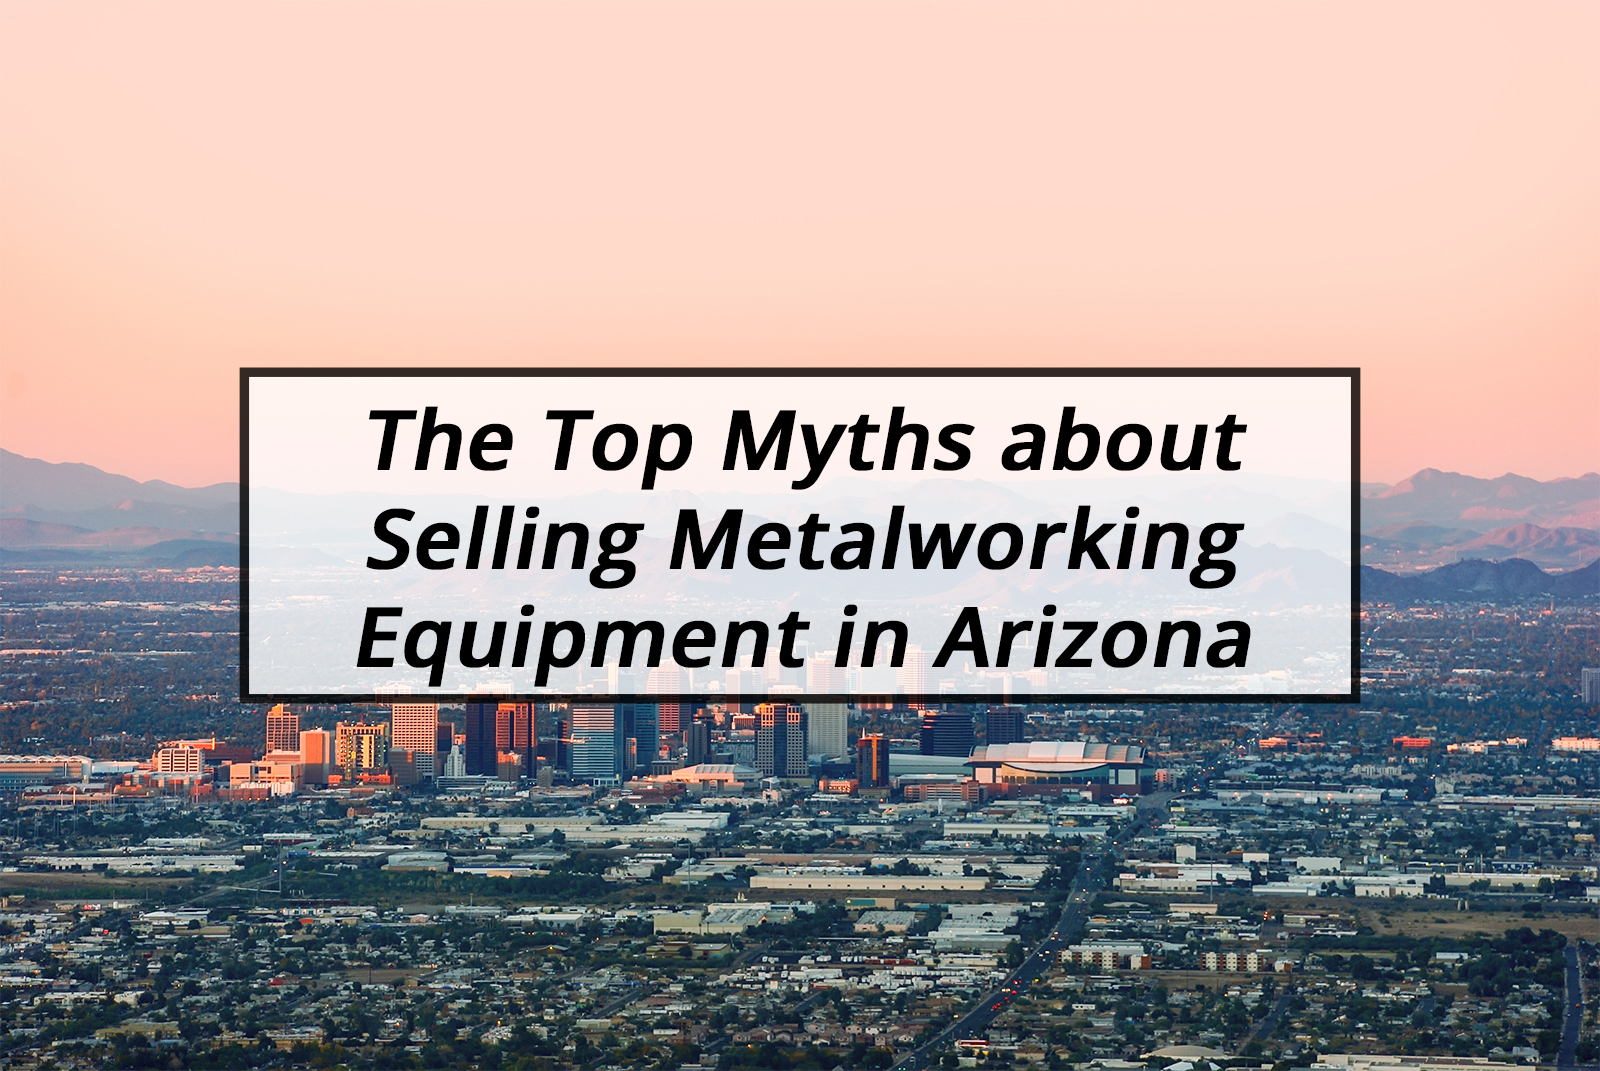 The Top Myths about Selling Metalworking Equipment in Arizona